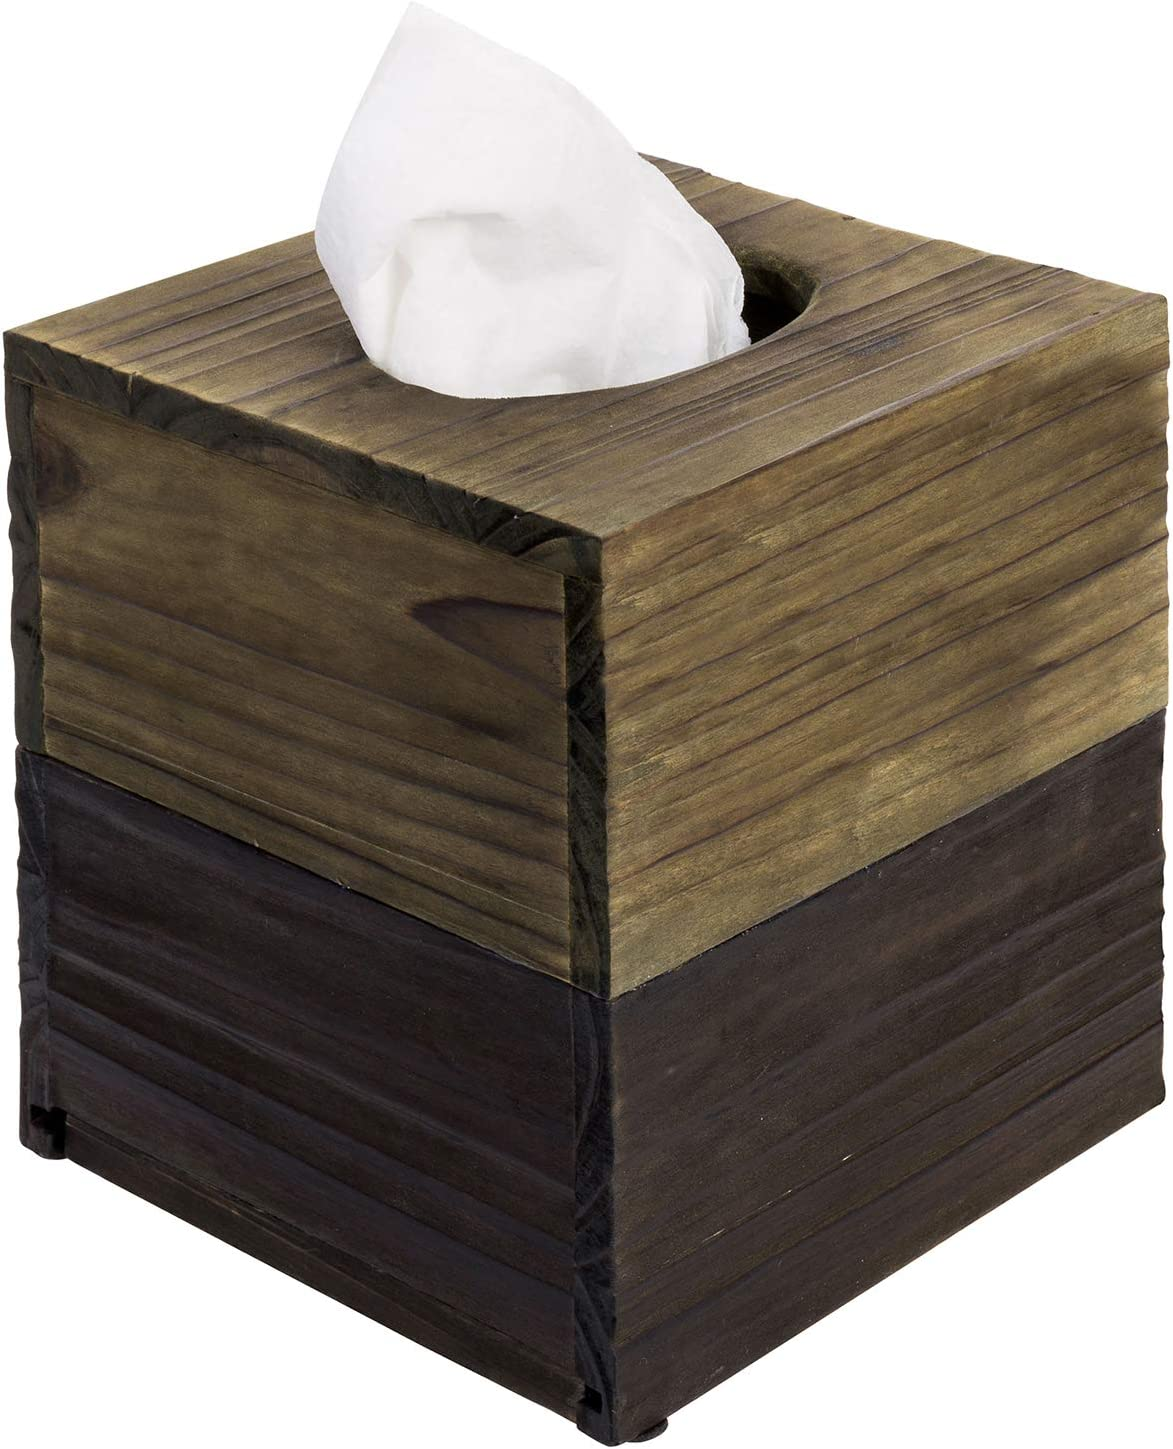 MyGift Distressed Barn Wood Dual Tone Brown Square Tissue Box Cover with Slide-Out Bottom Panel